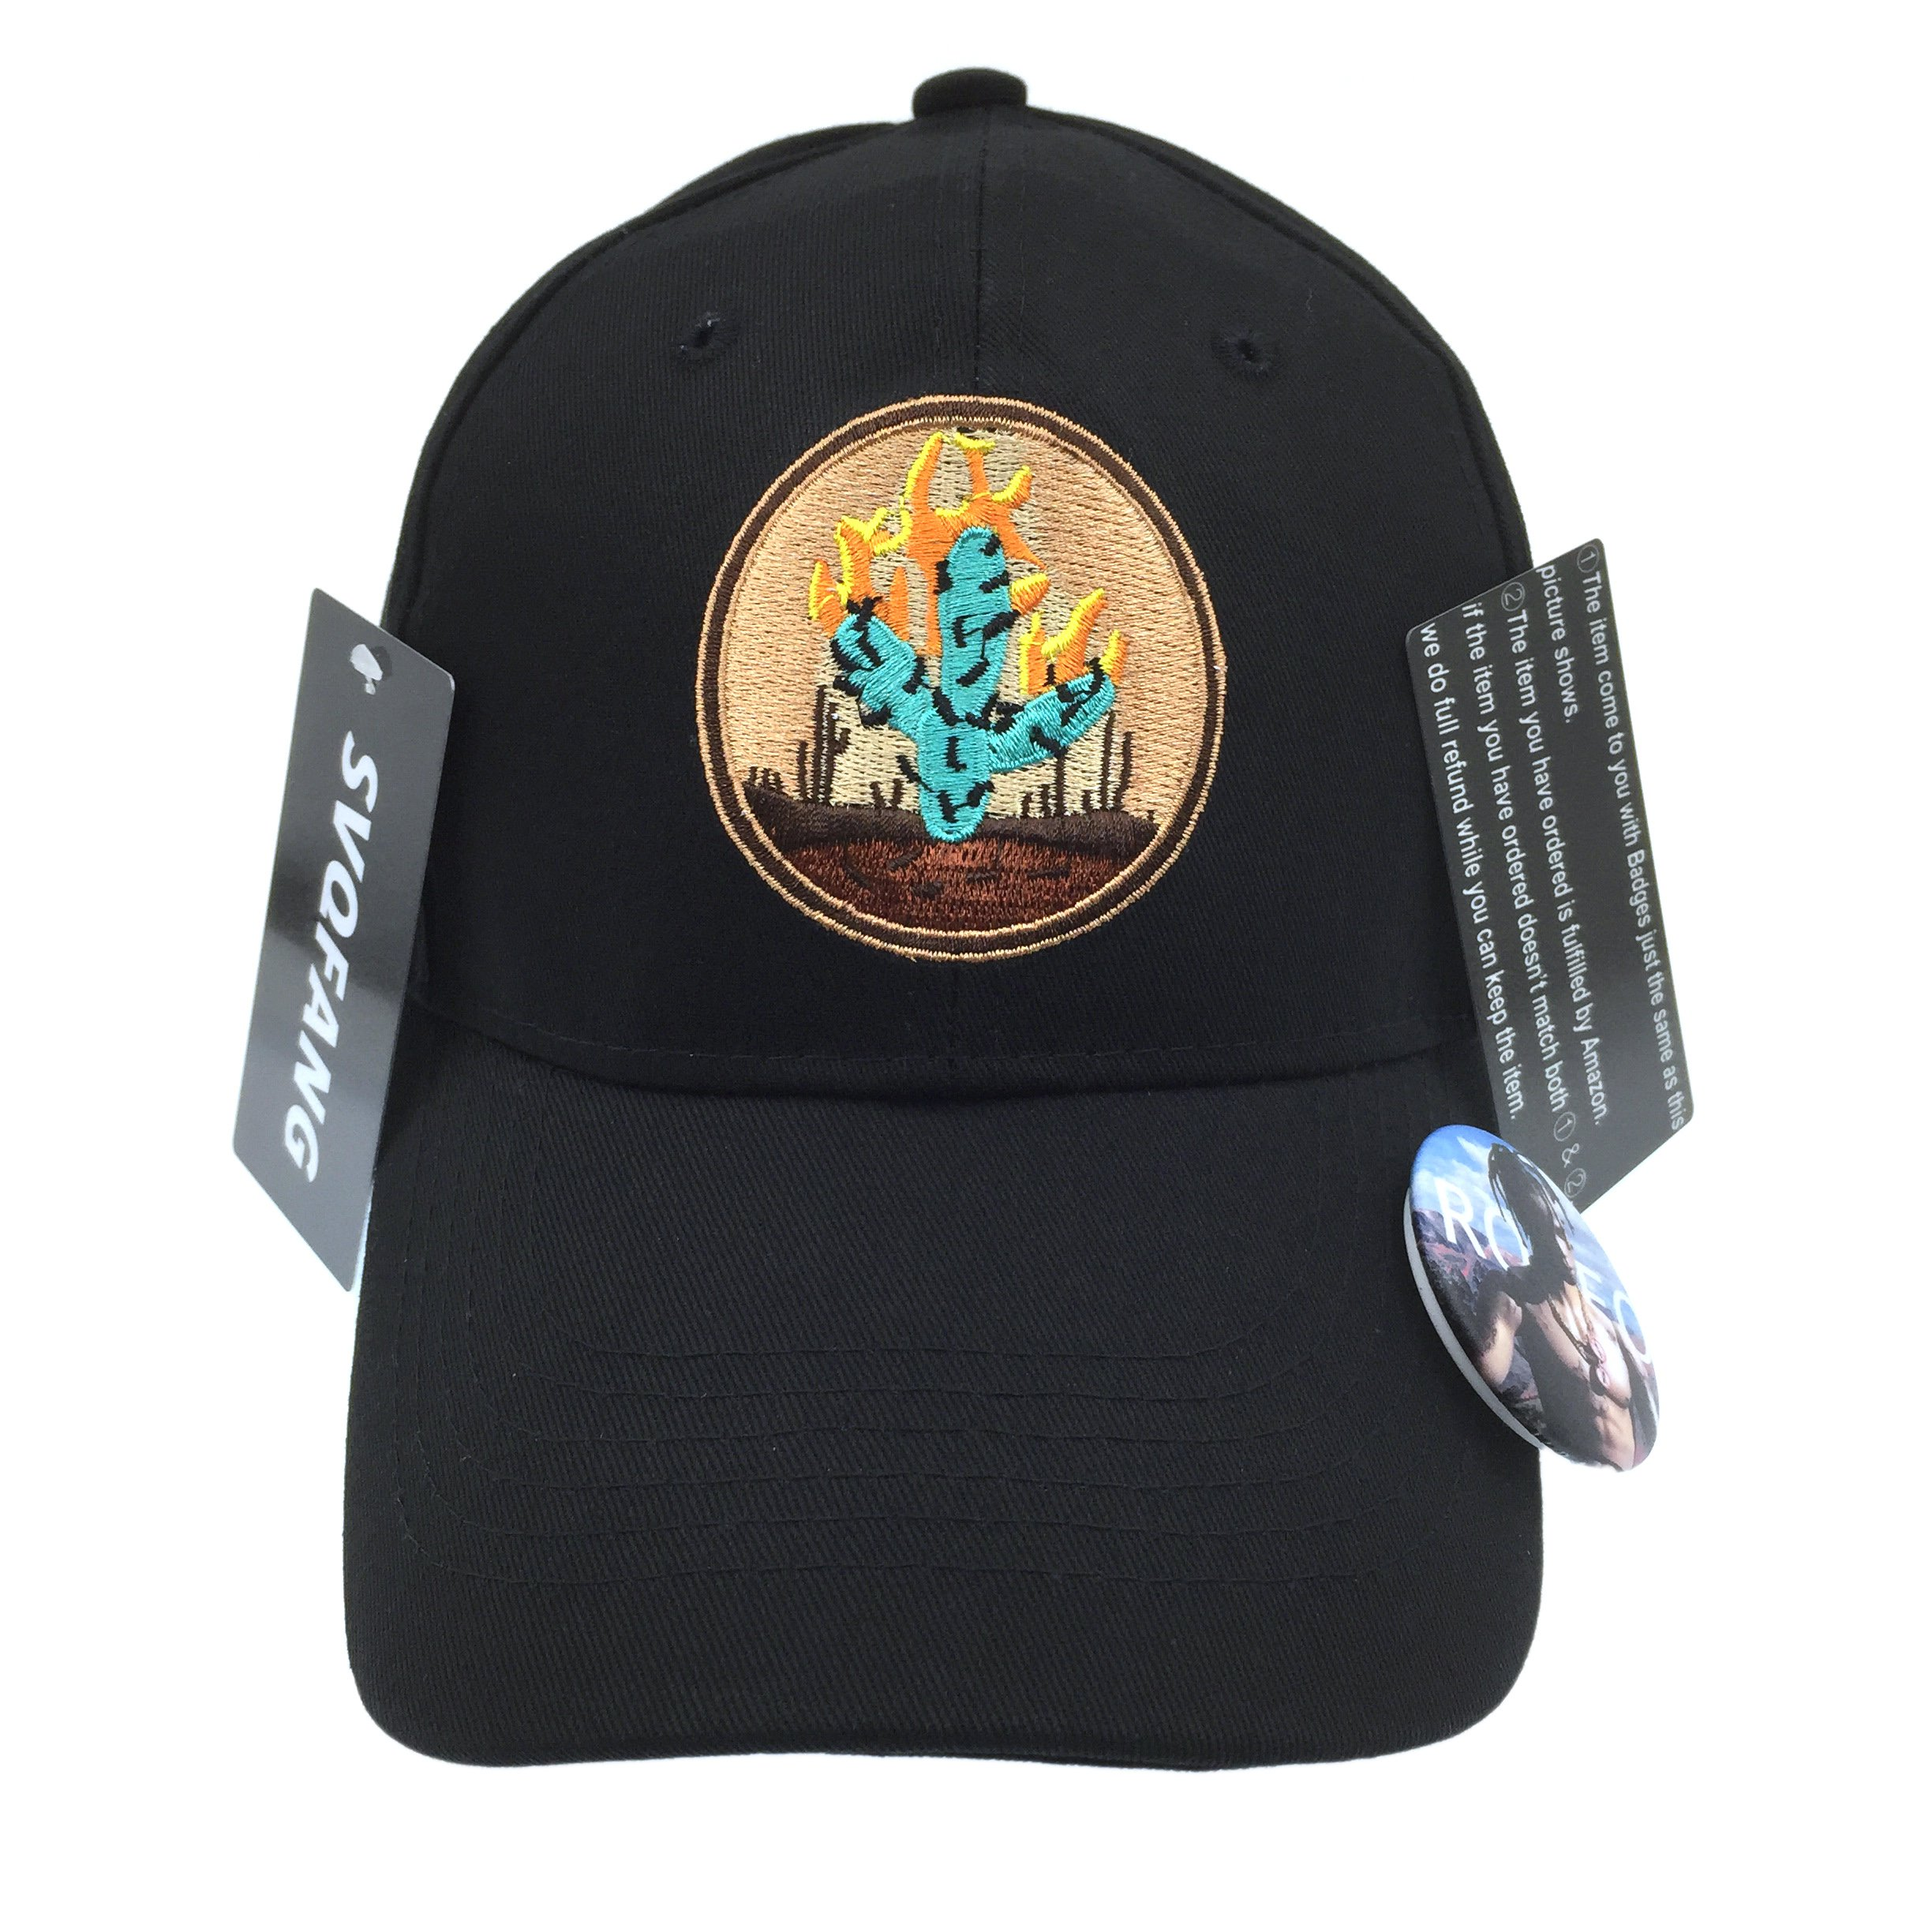 b3f1209d Travis Scott Rodeo Hat Cap Tour Merch Cactus Travi$ Strapback Black New  Apparel